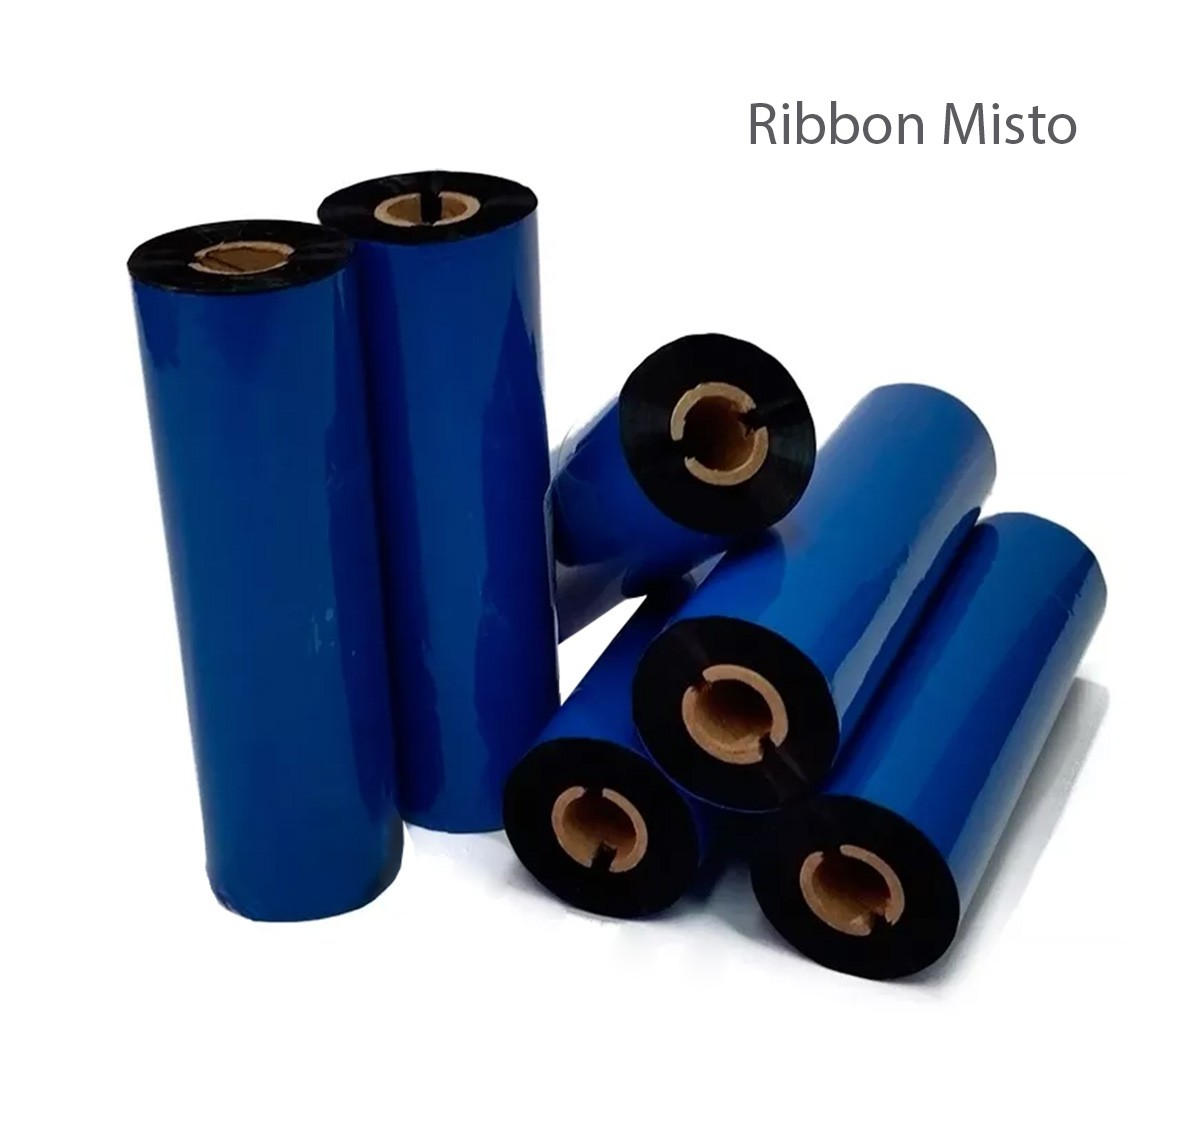 Ribbon Misto 110mm x 91 Misto de largura - Armor